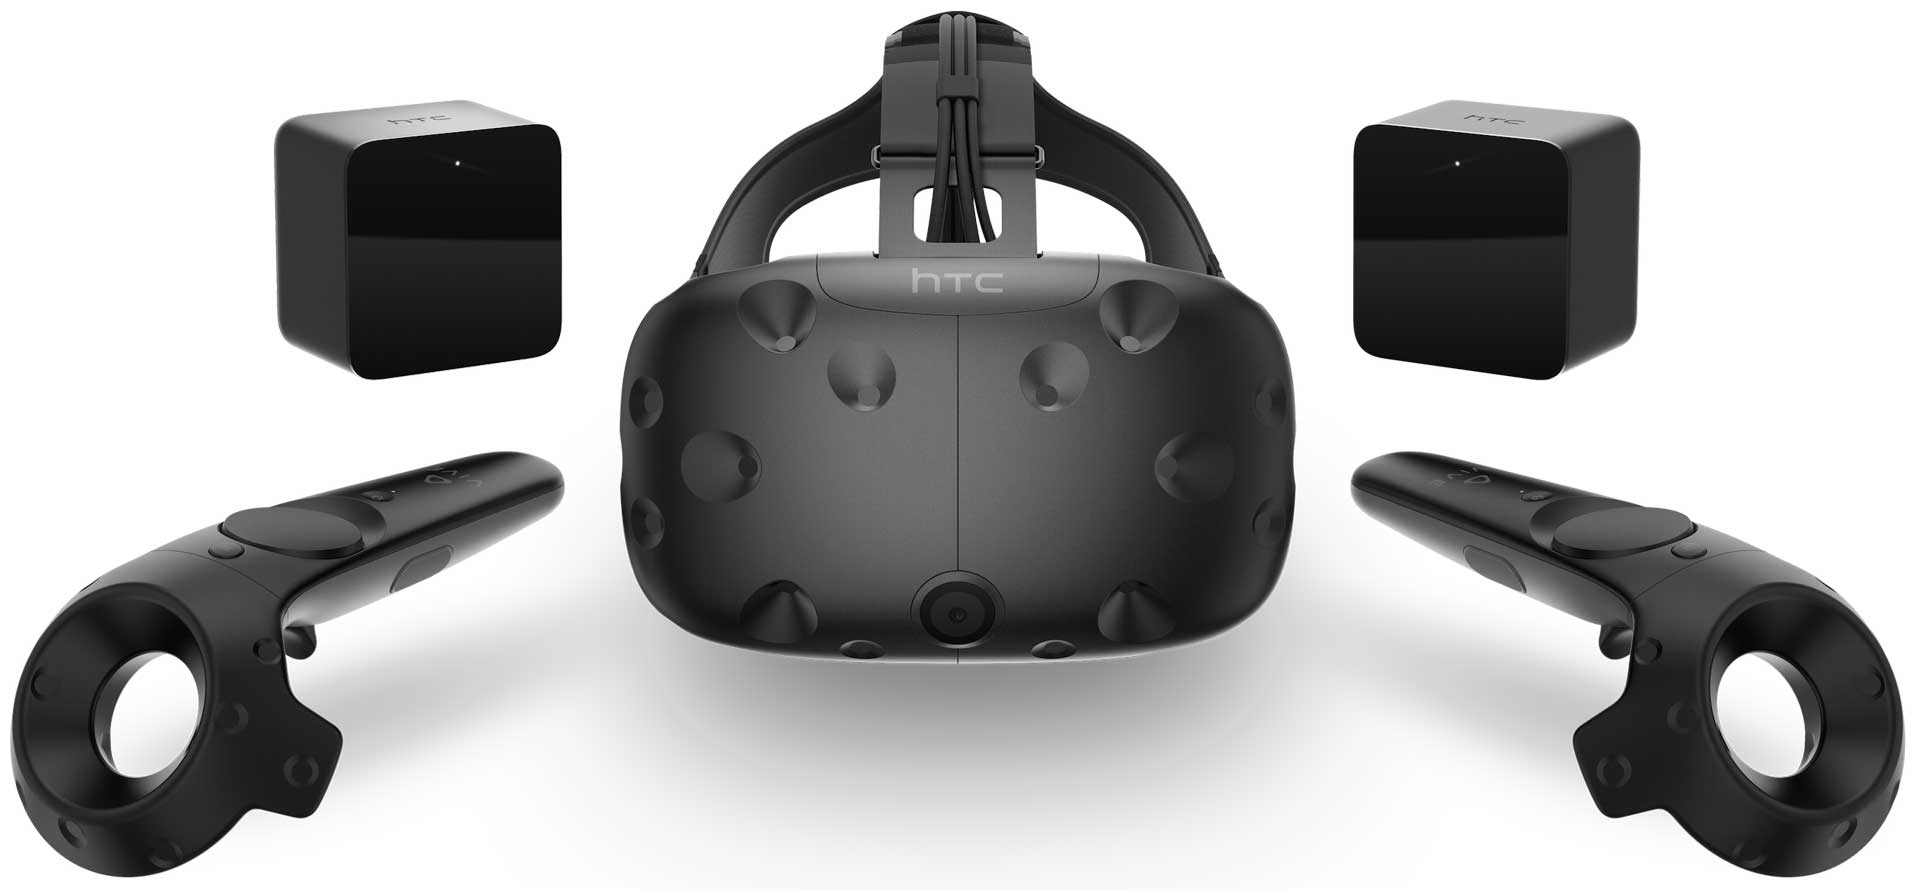 0e9278cf74a7 htc vive price release date steamvr. The Vive virtual reality headset ...